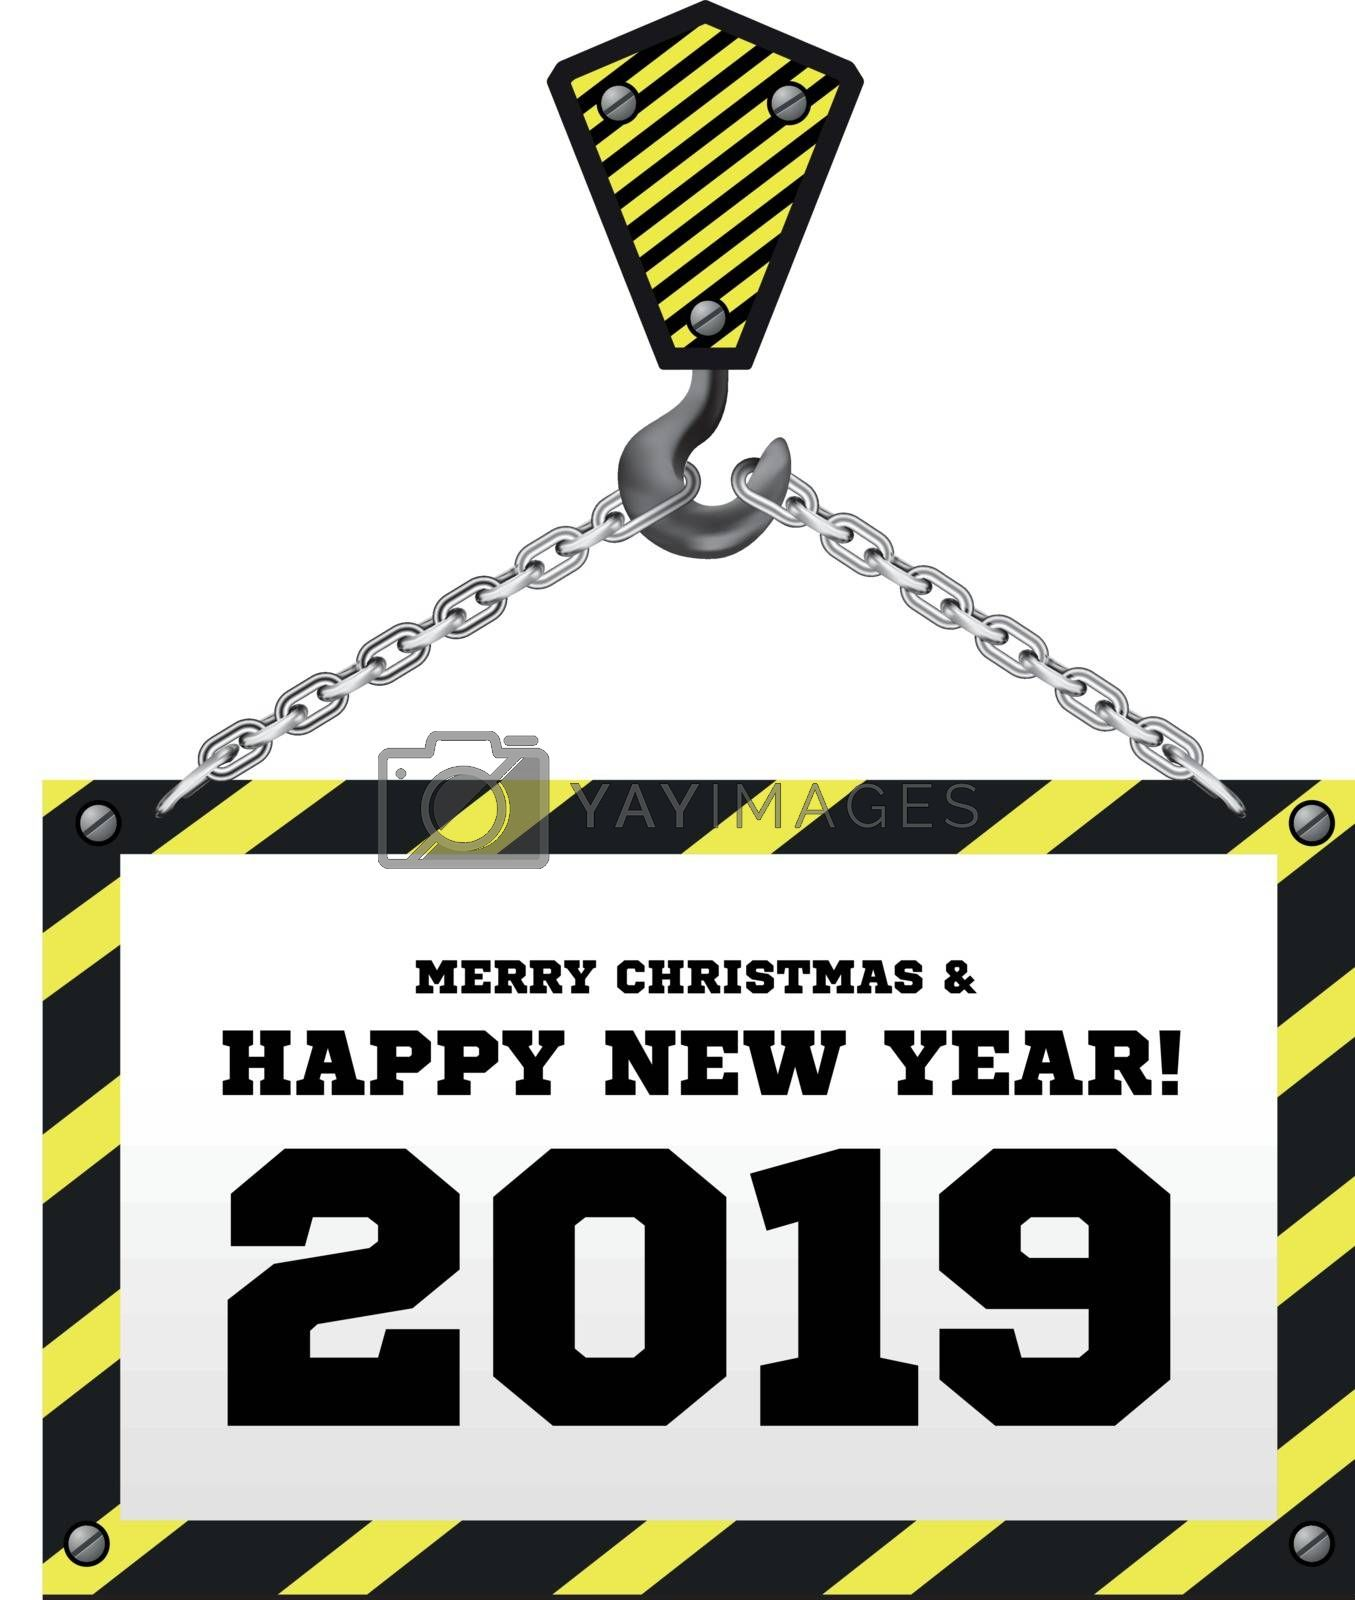 Congratulations to the New Year 2019 on the background of a construction crane. Vector illustration